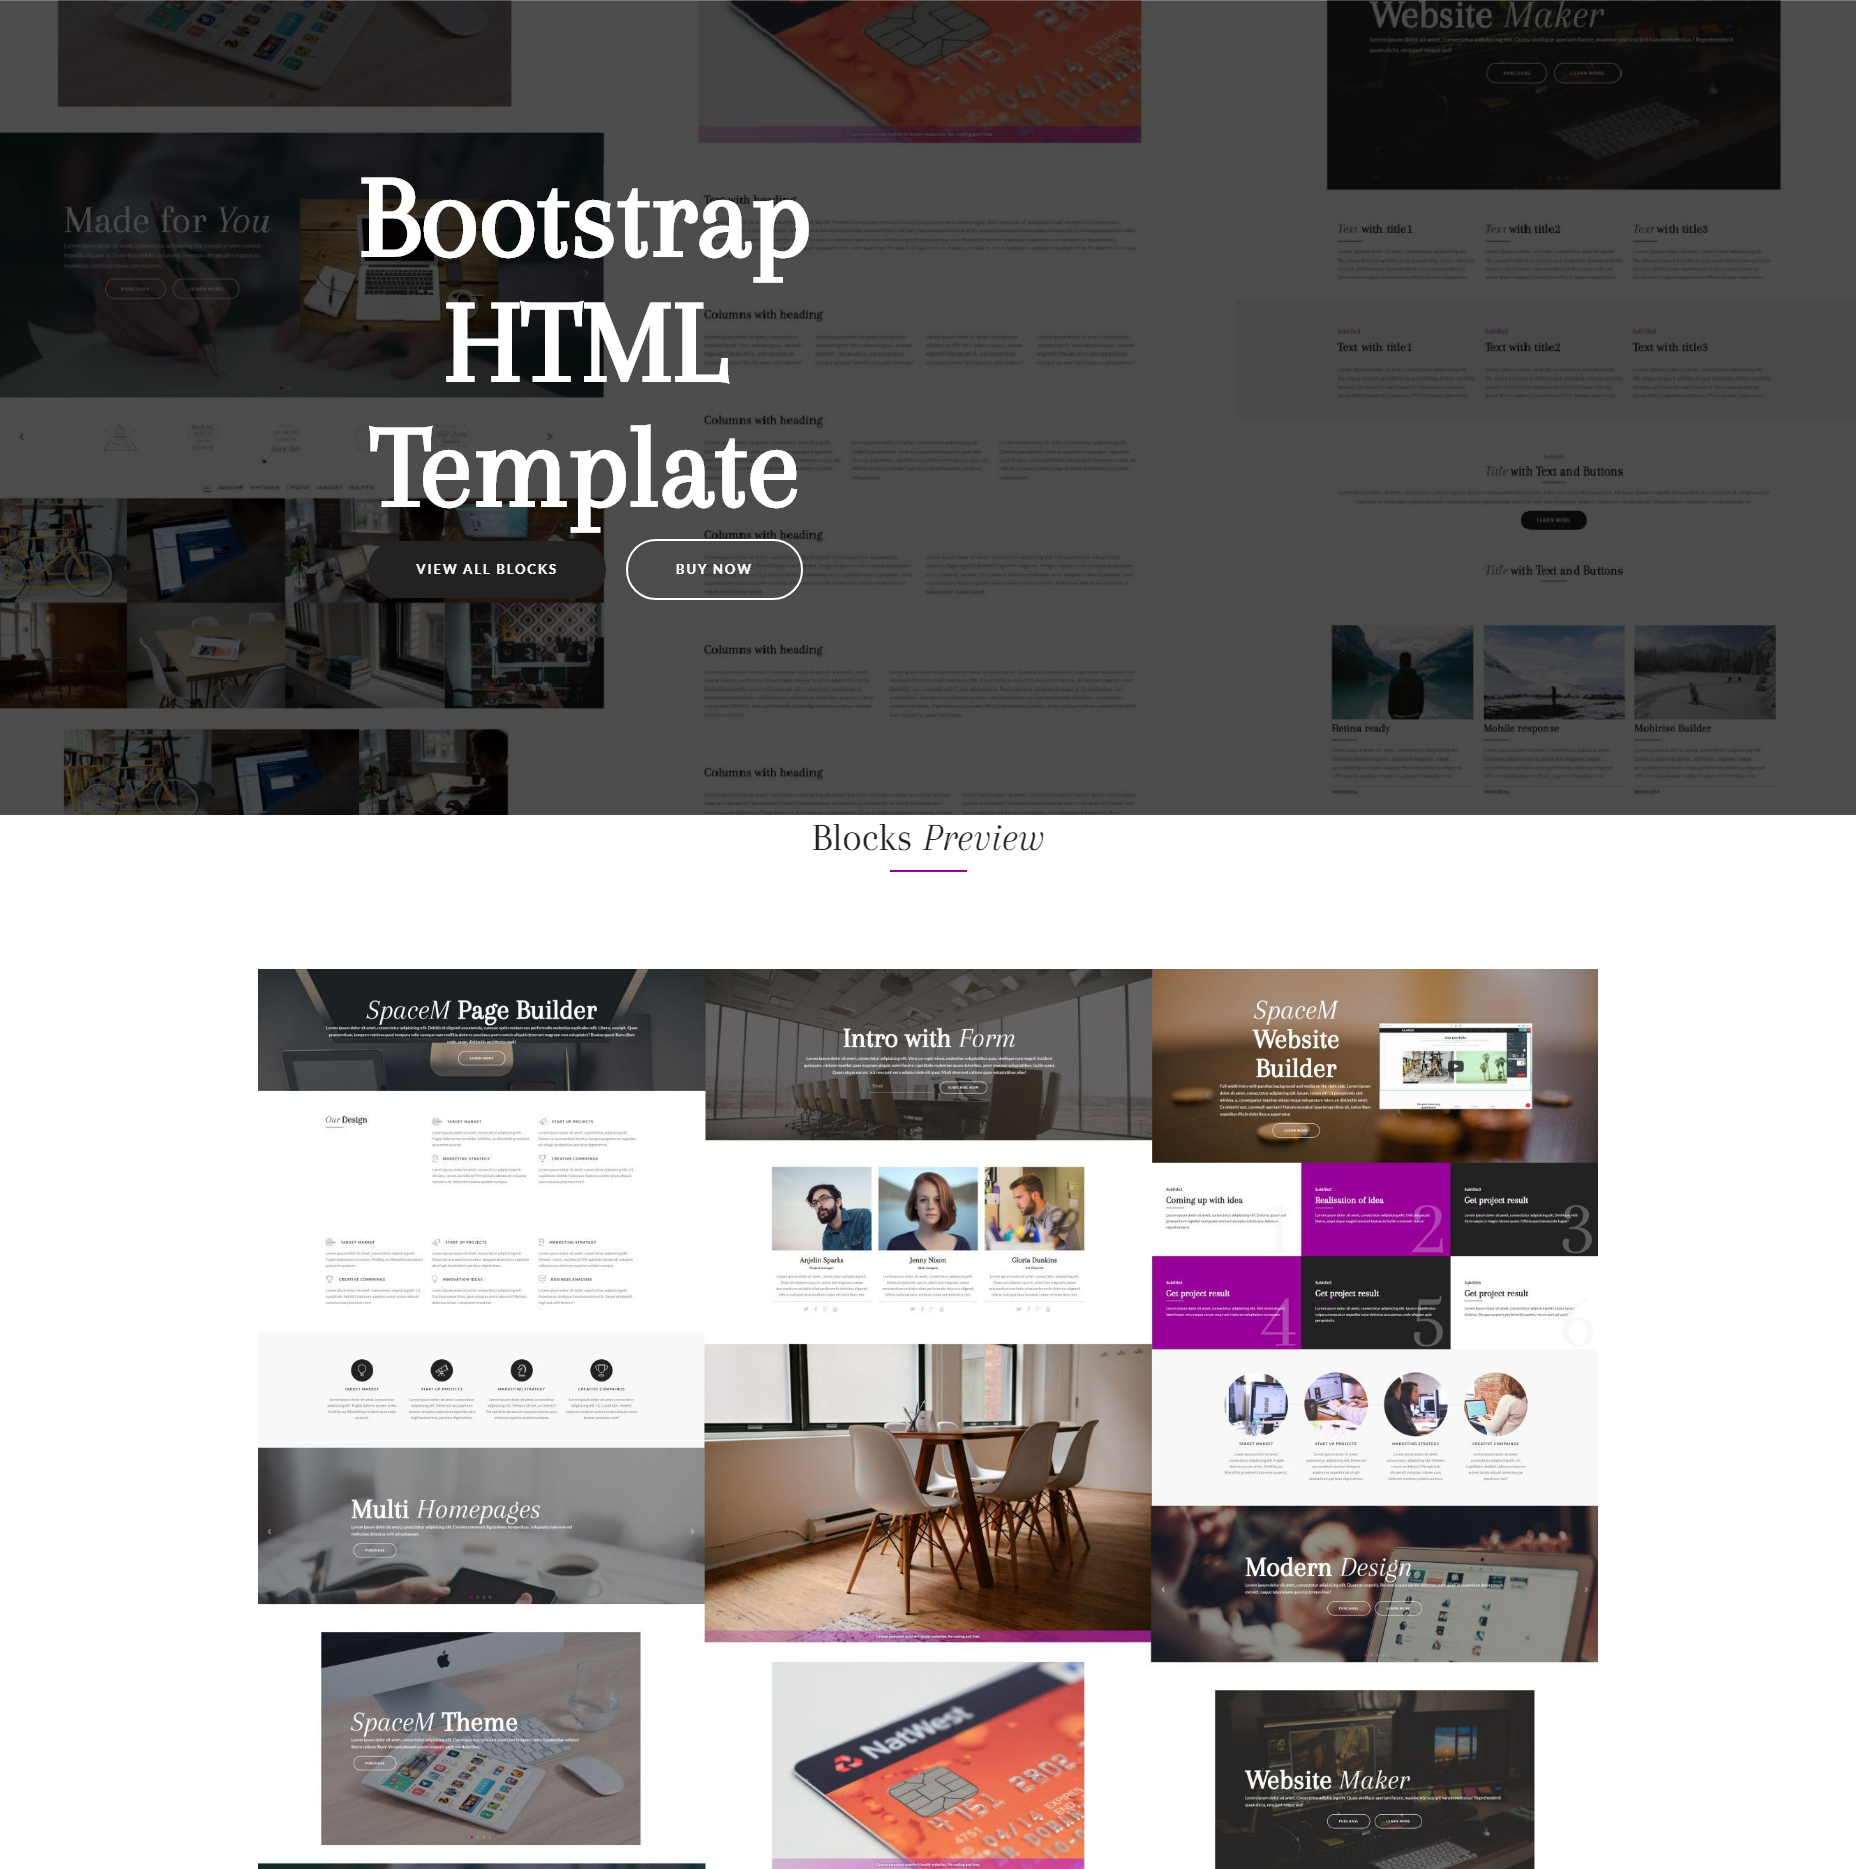 CSS3 Bootstrap SpaceM Templates